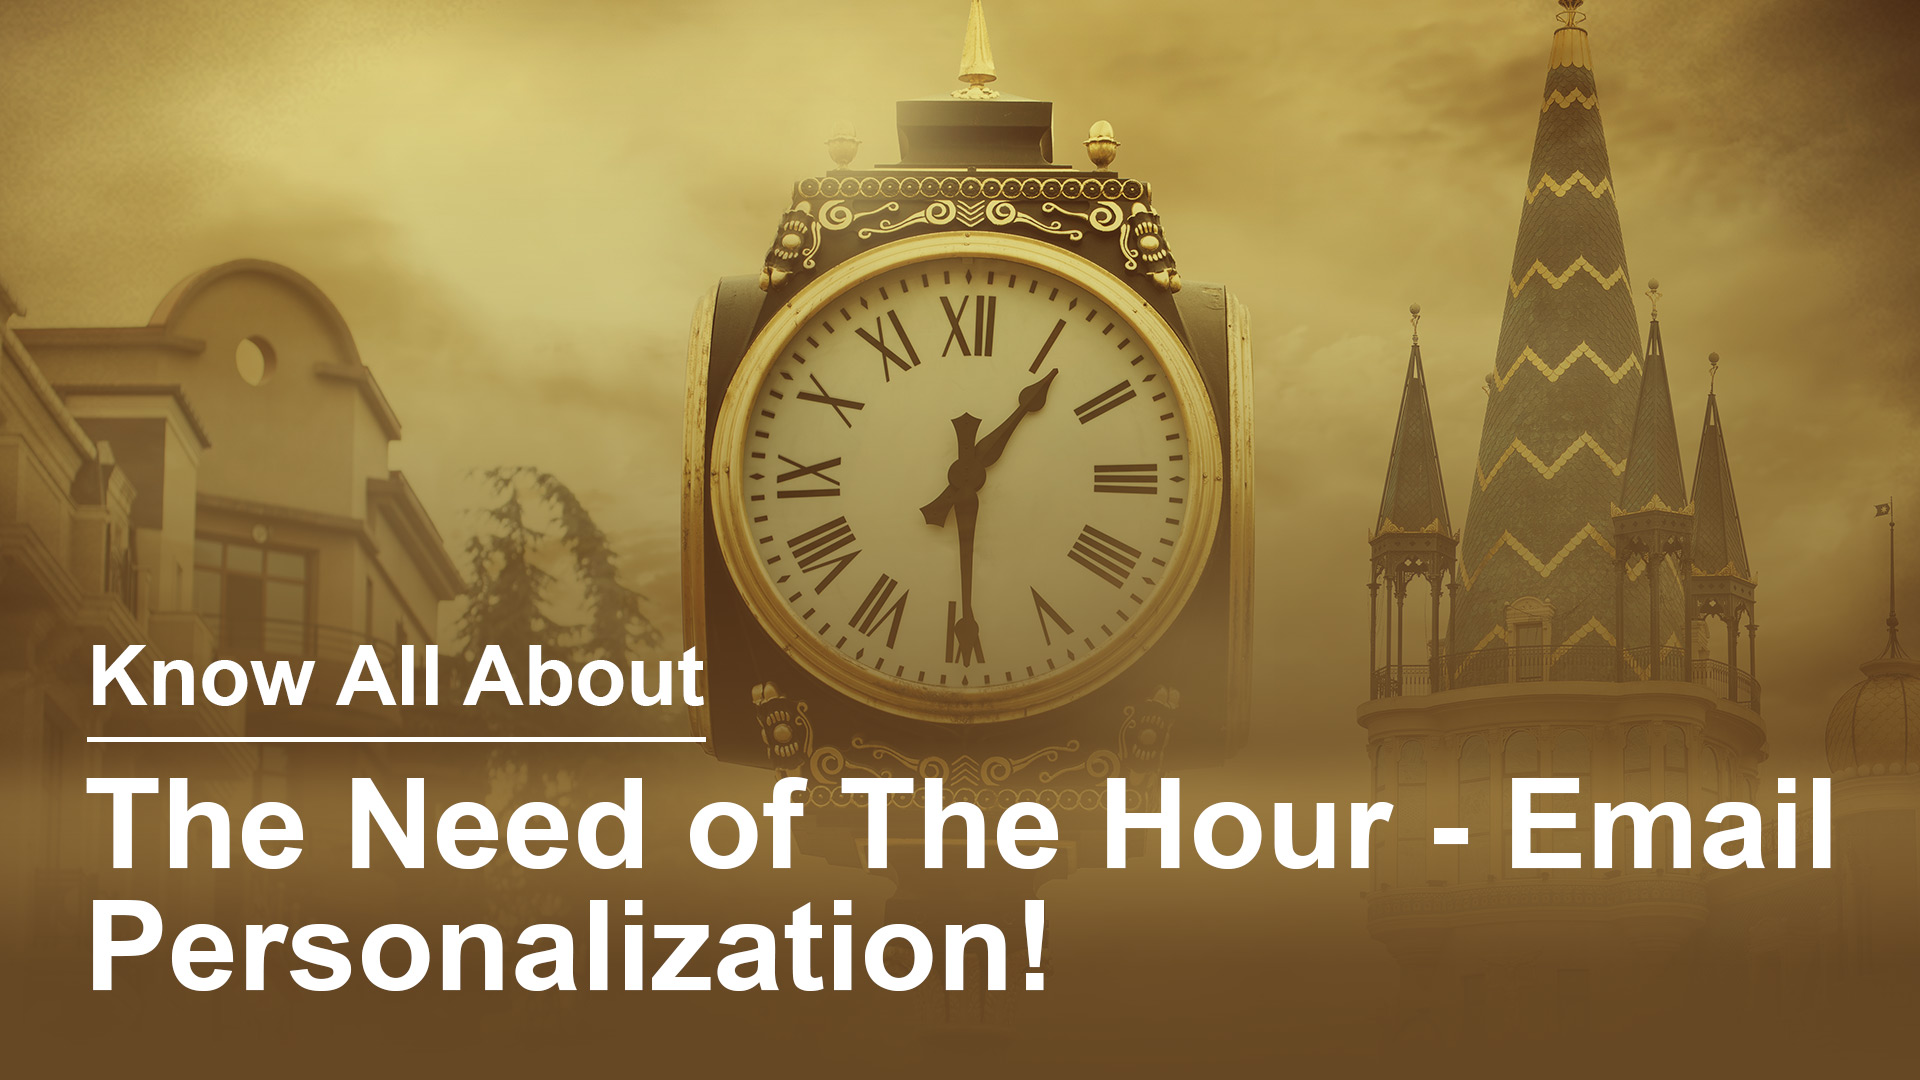 Know All About The Need of The Hour - Email Personalization